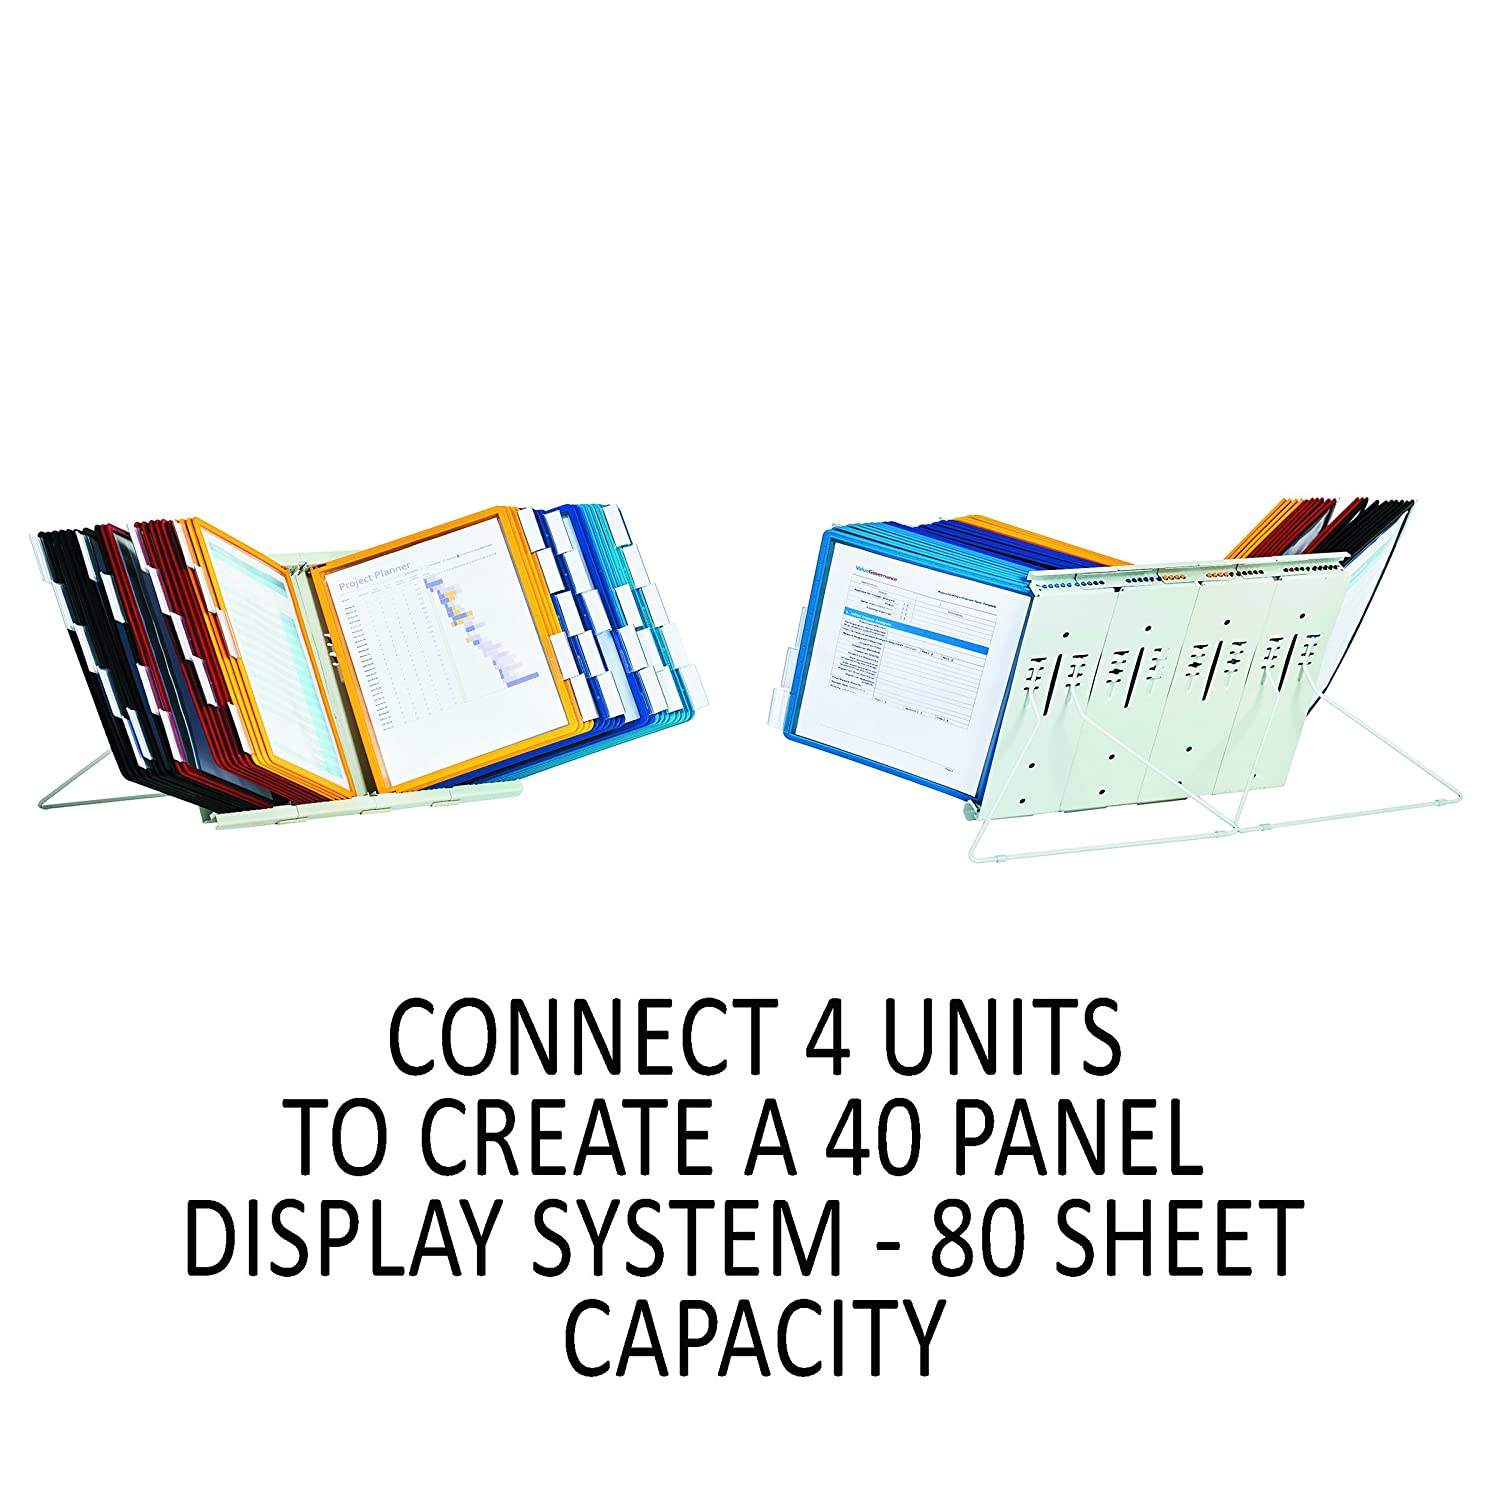 Durable Instaview Desktop Reference System with Border Panels of Assorted Colors DBL561200